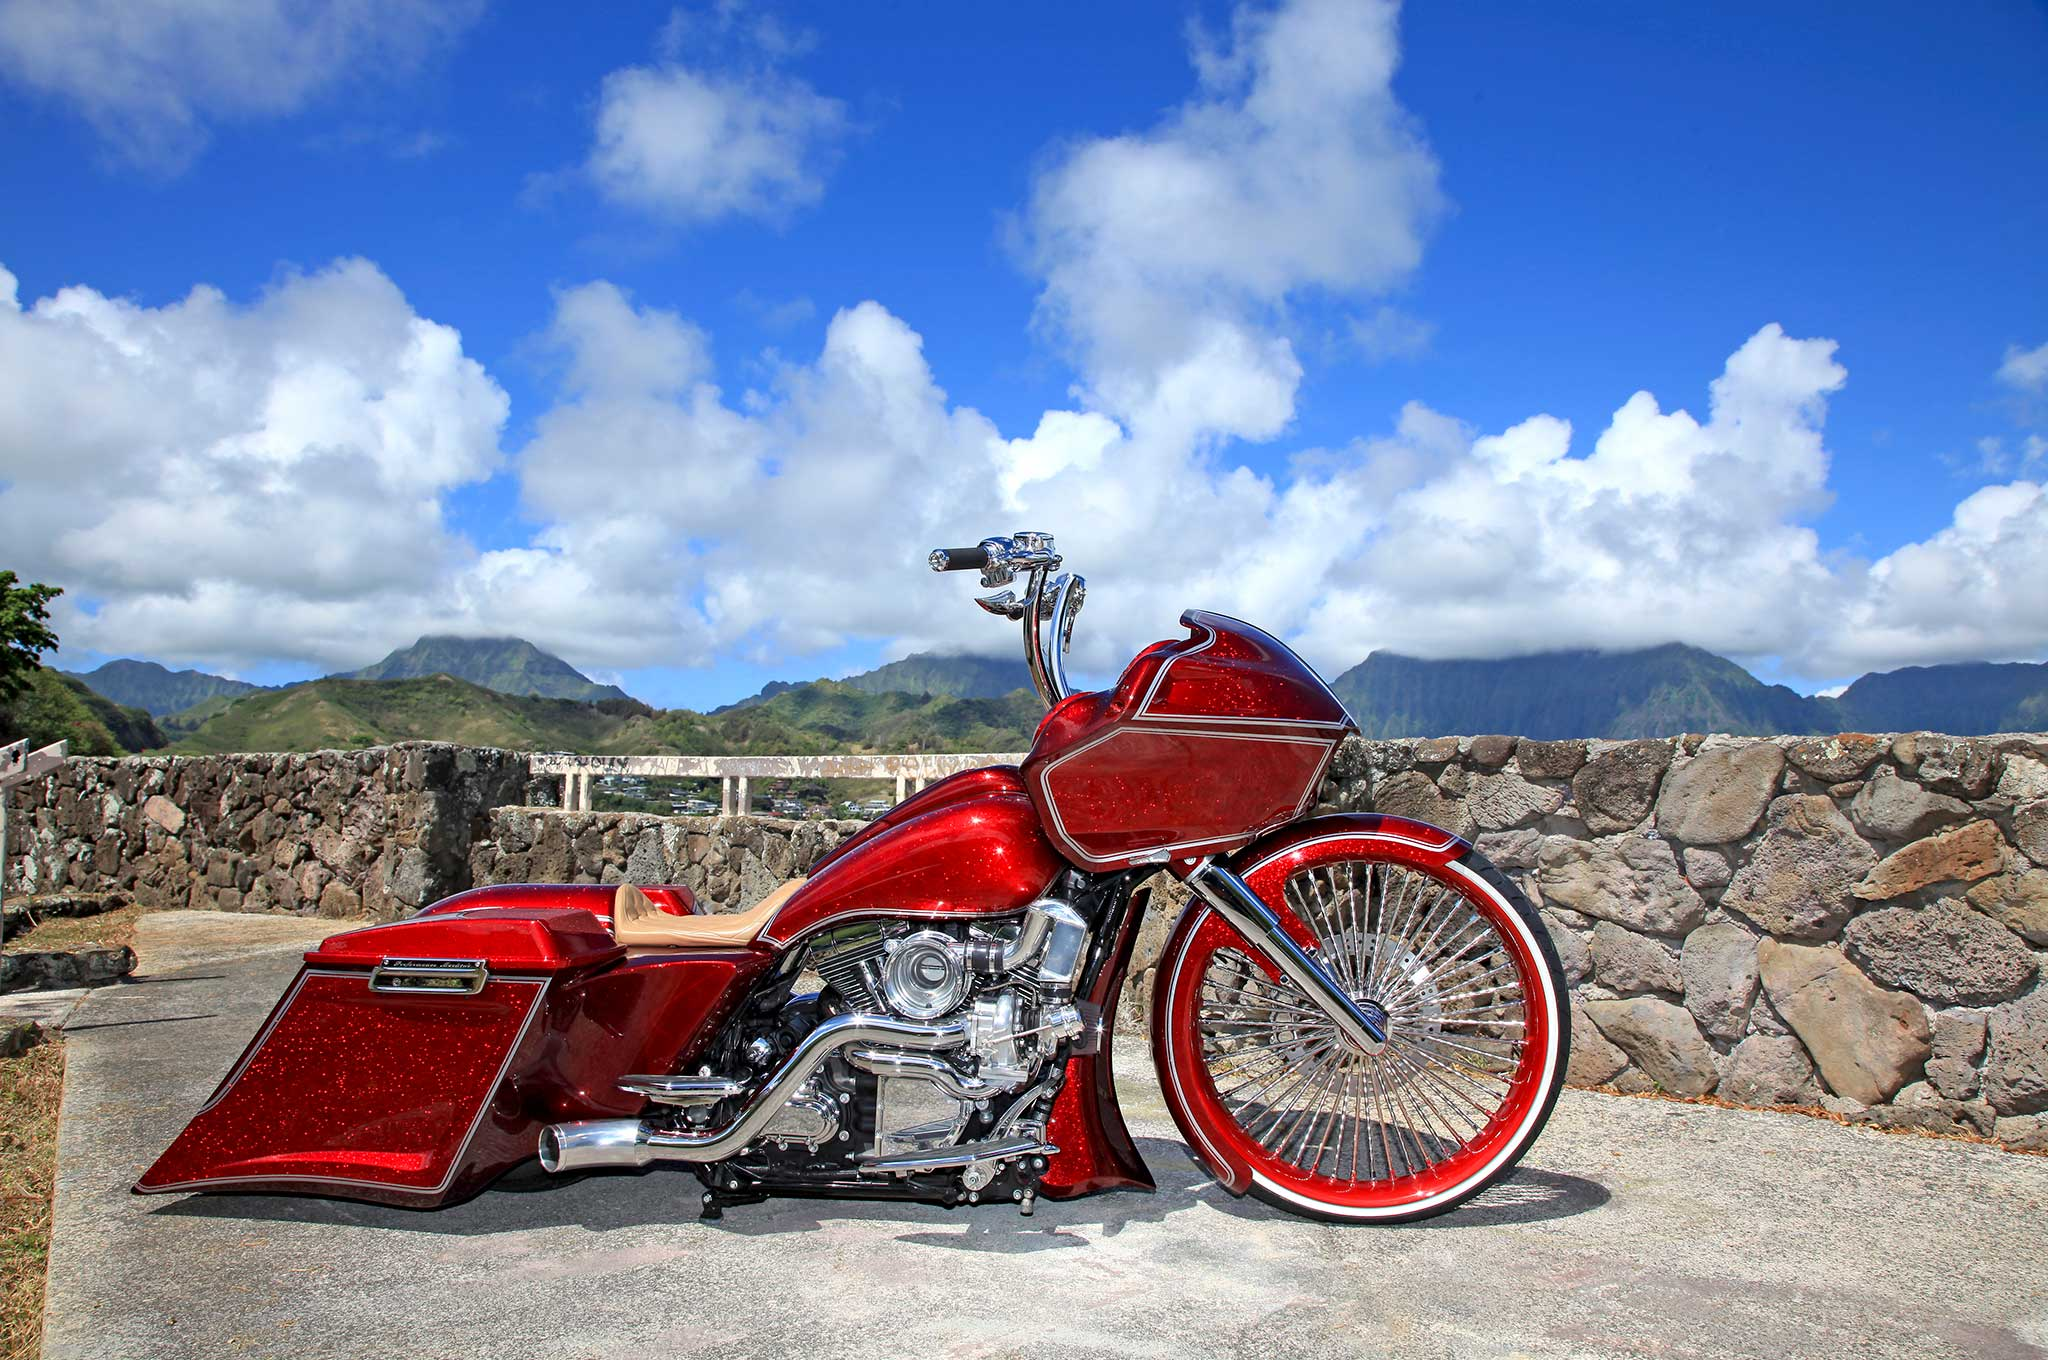 17 Inch Low Profile Tires >> 2013 Harley-Davidson Road Glide - Gliding in Paradise ...